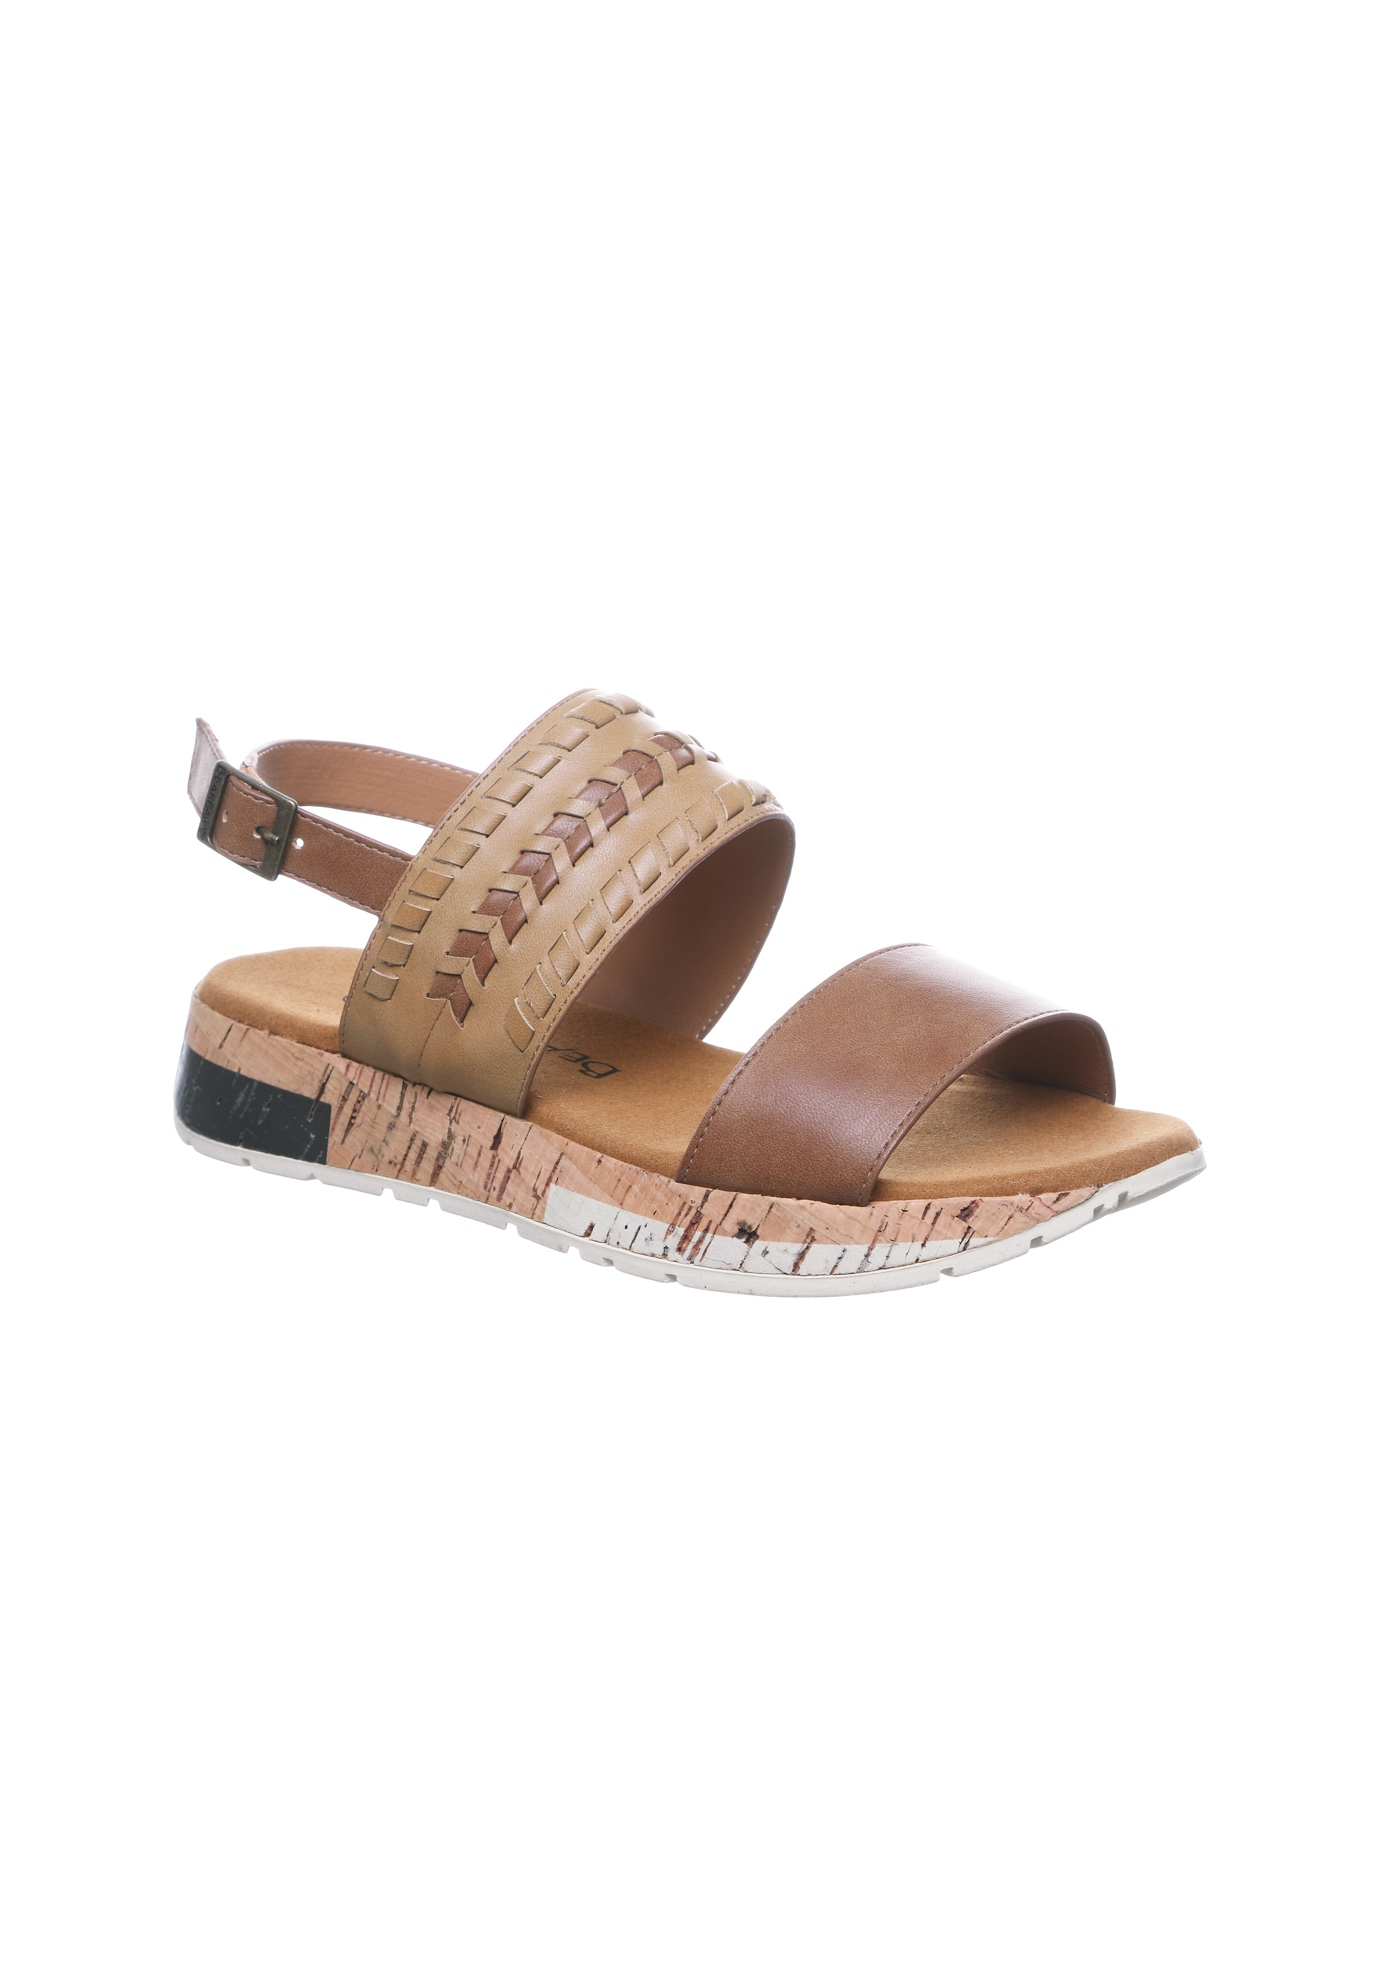 Stormi Sandals by Bearpaw,